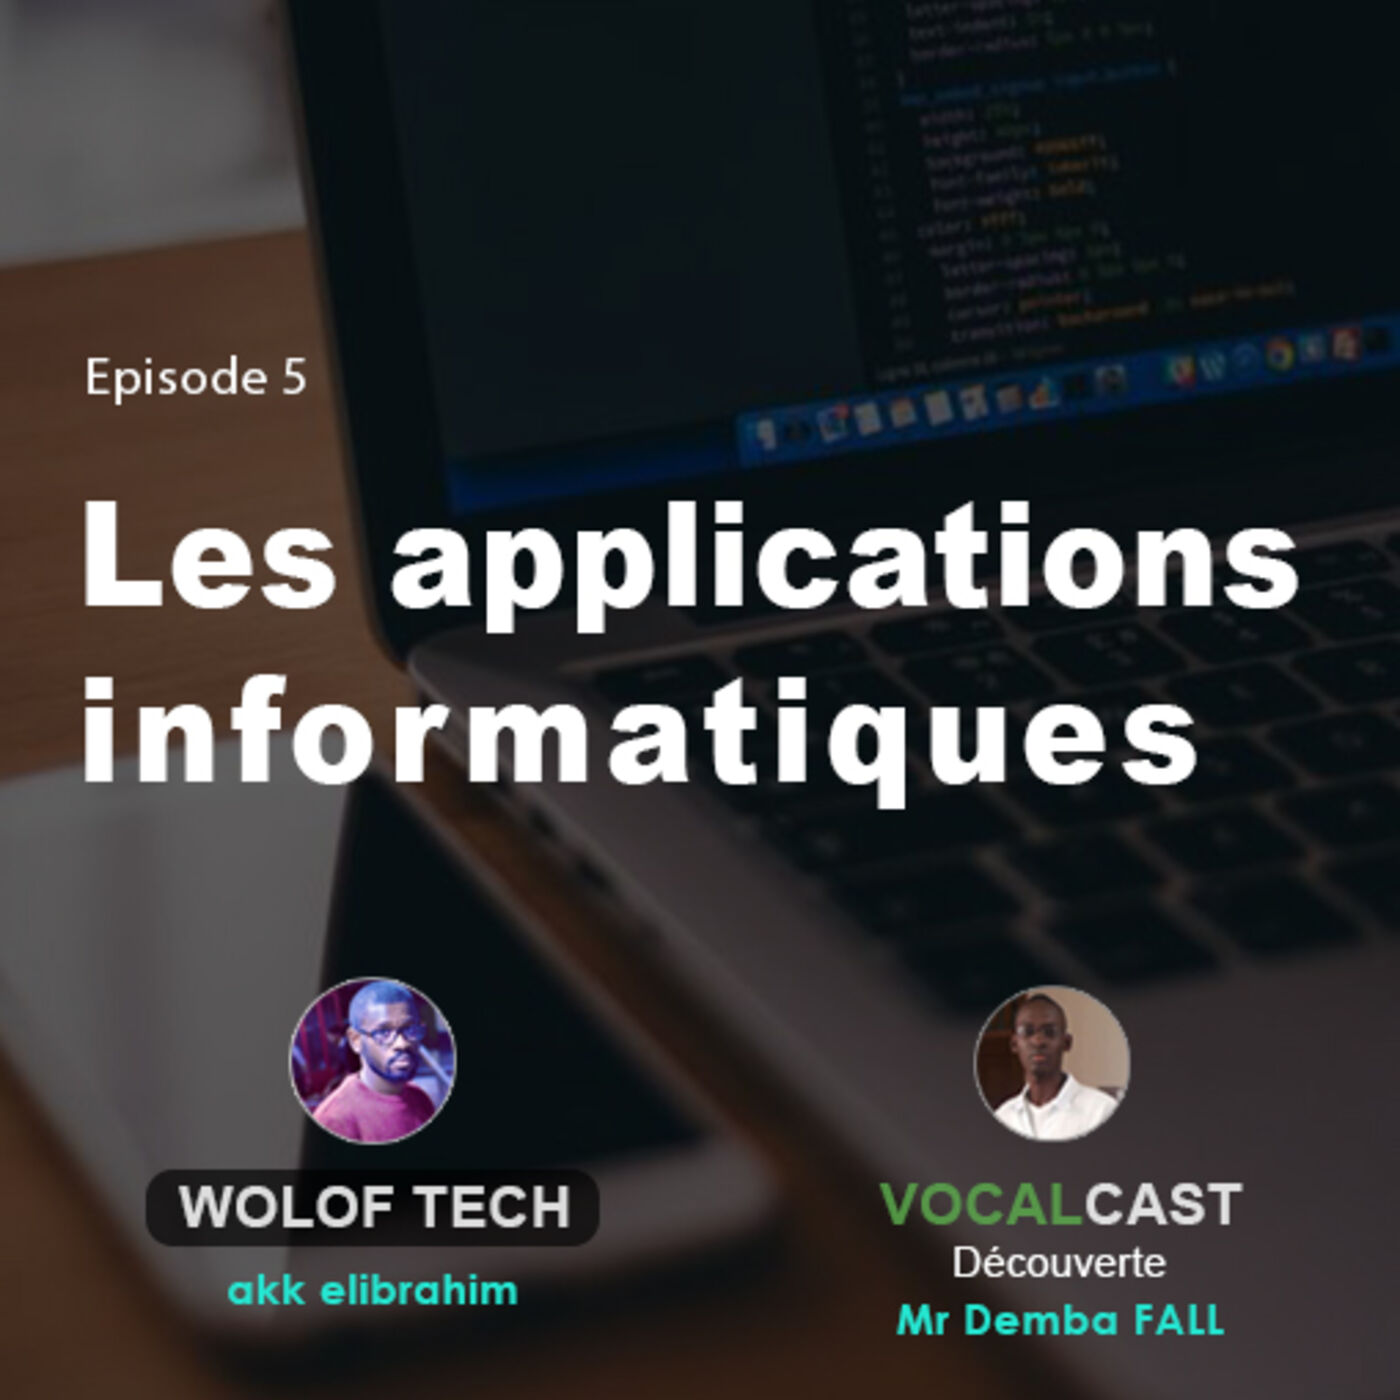 Les applications informatiques